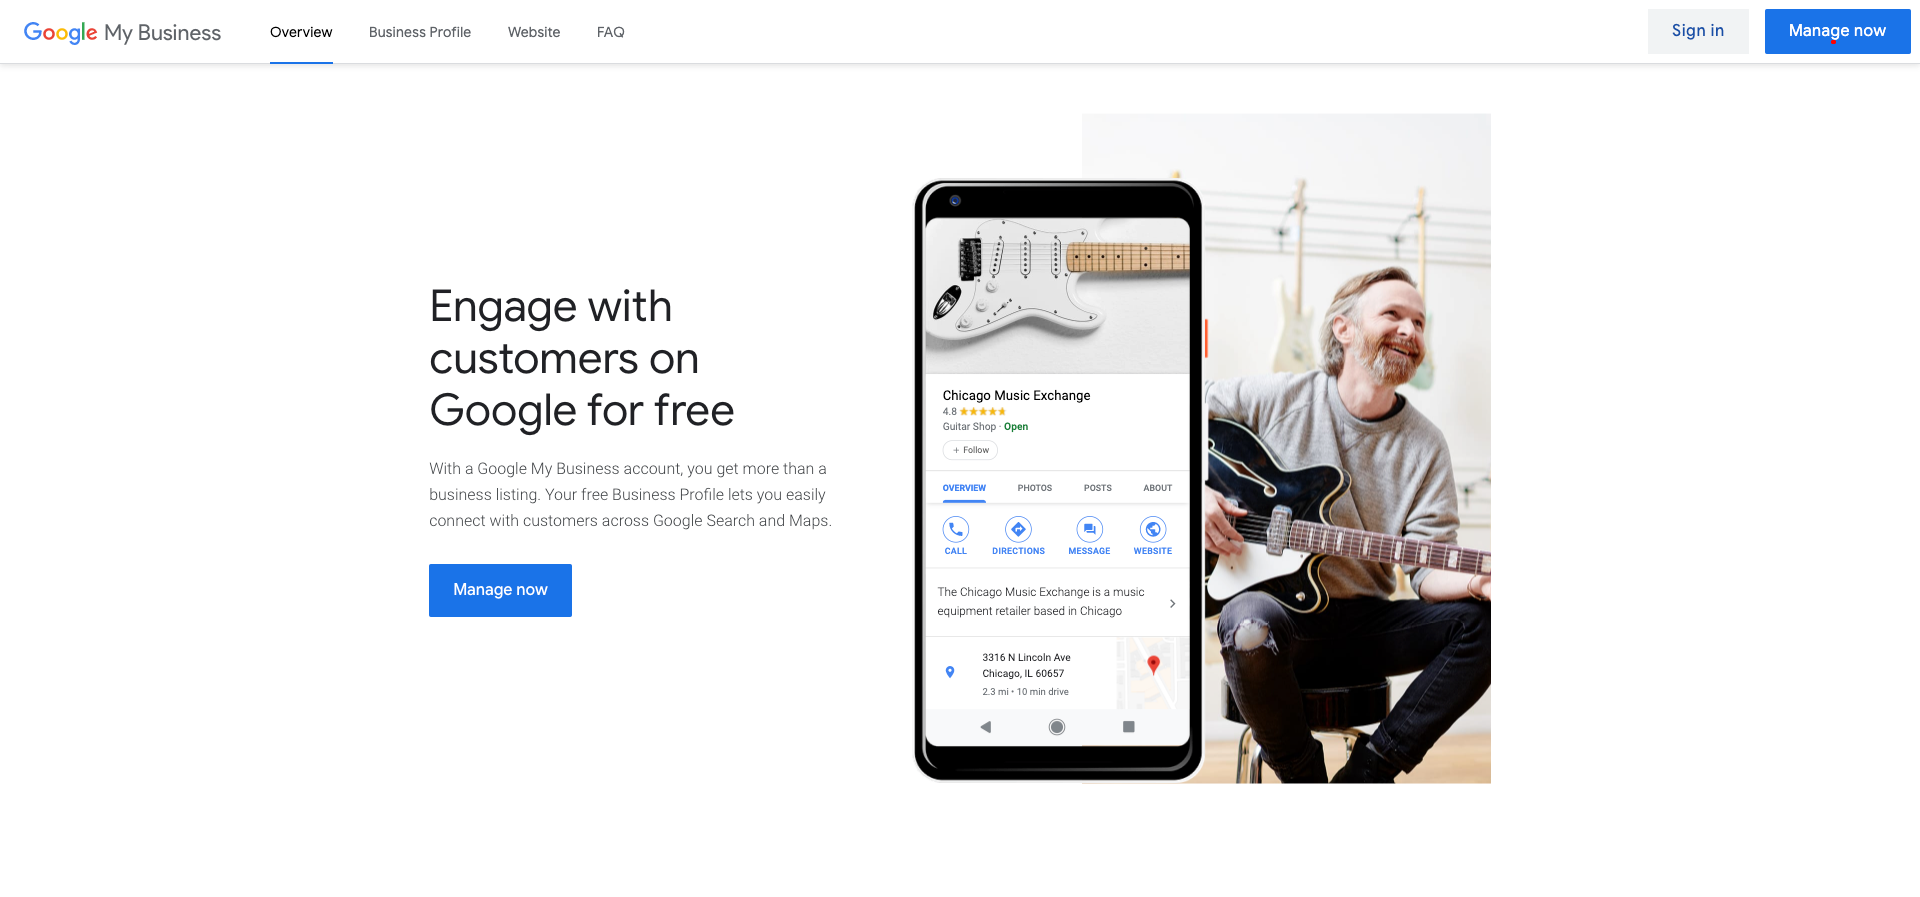 Engage with customers on Google for free